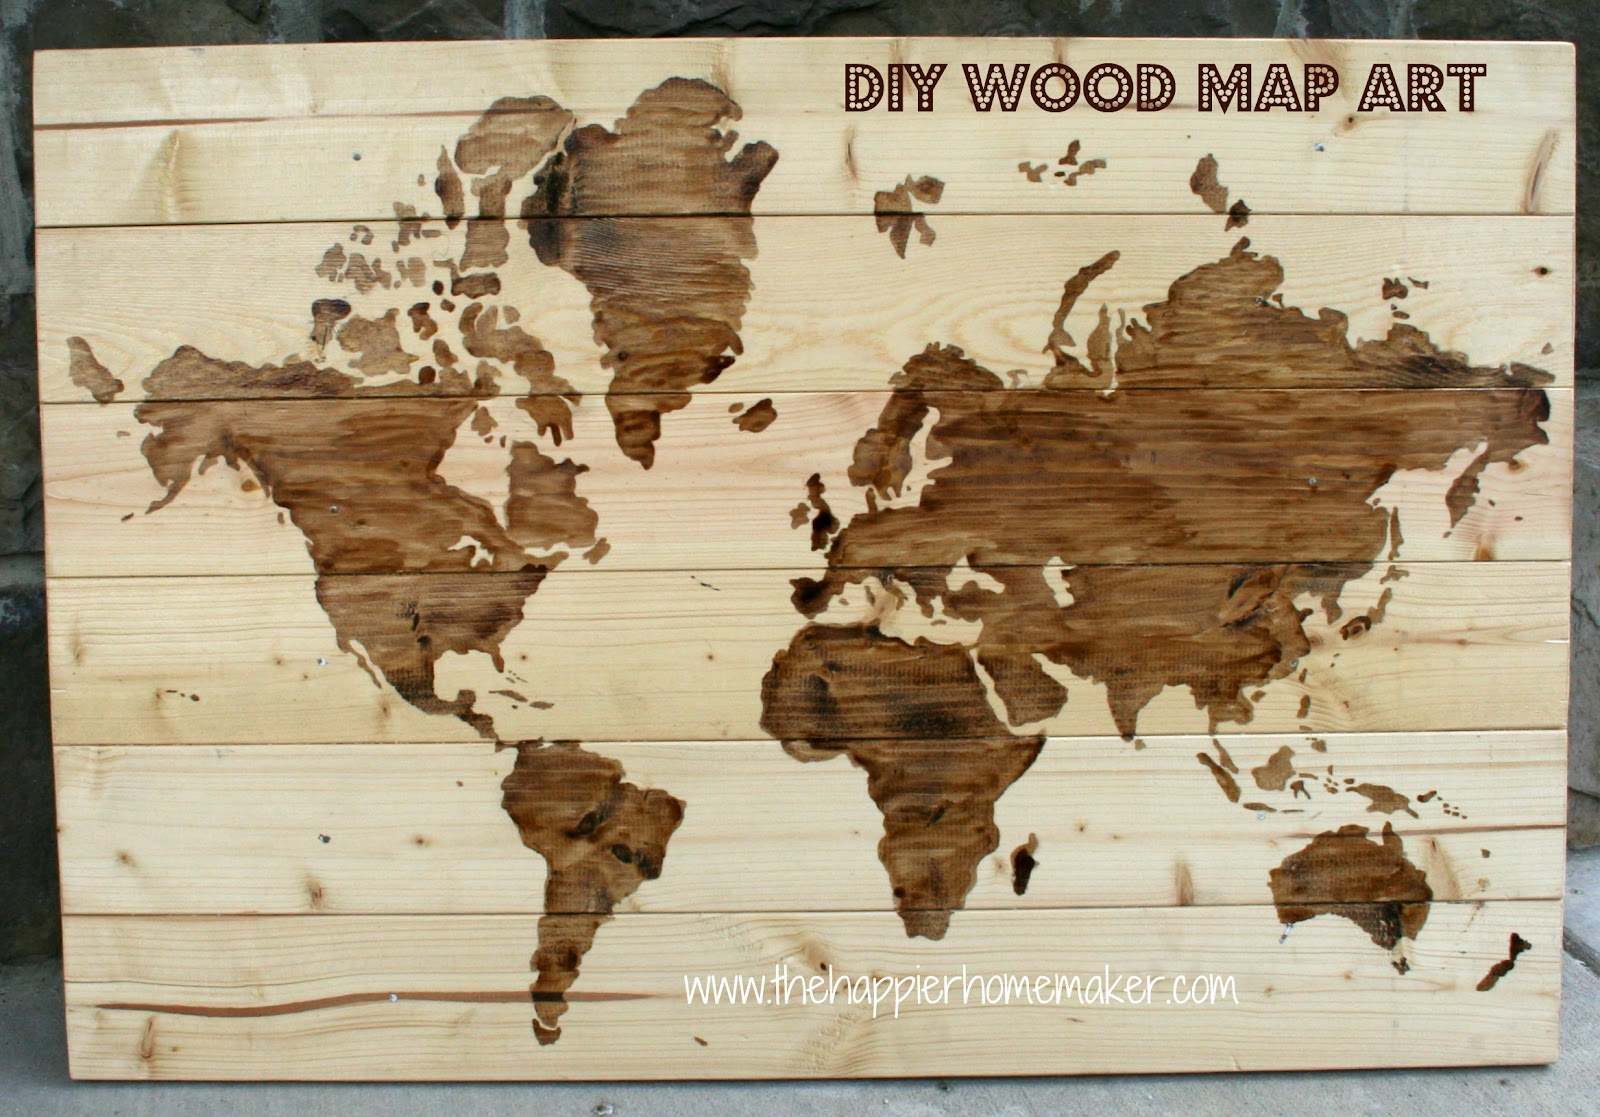 Diy wooden world map art the happier homemaker gumiabroncs Choice Image